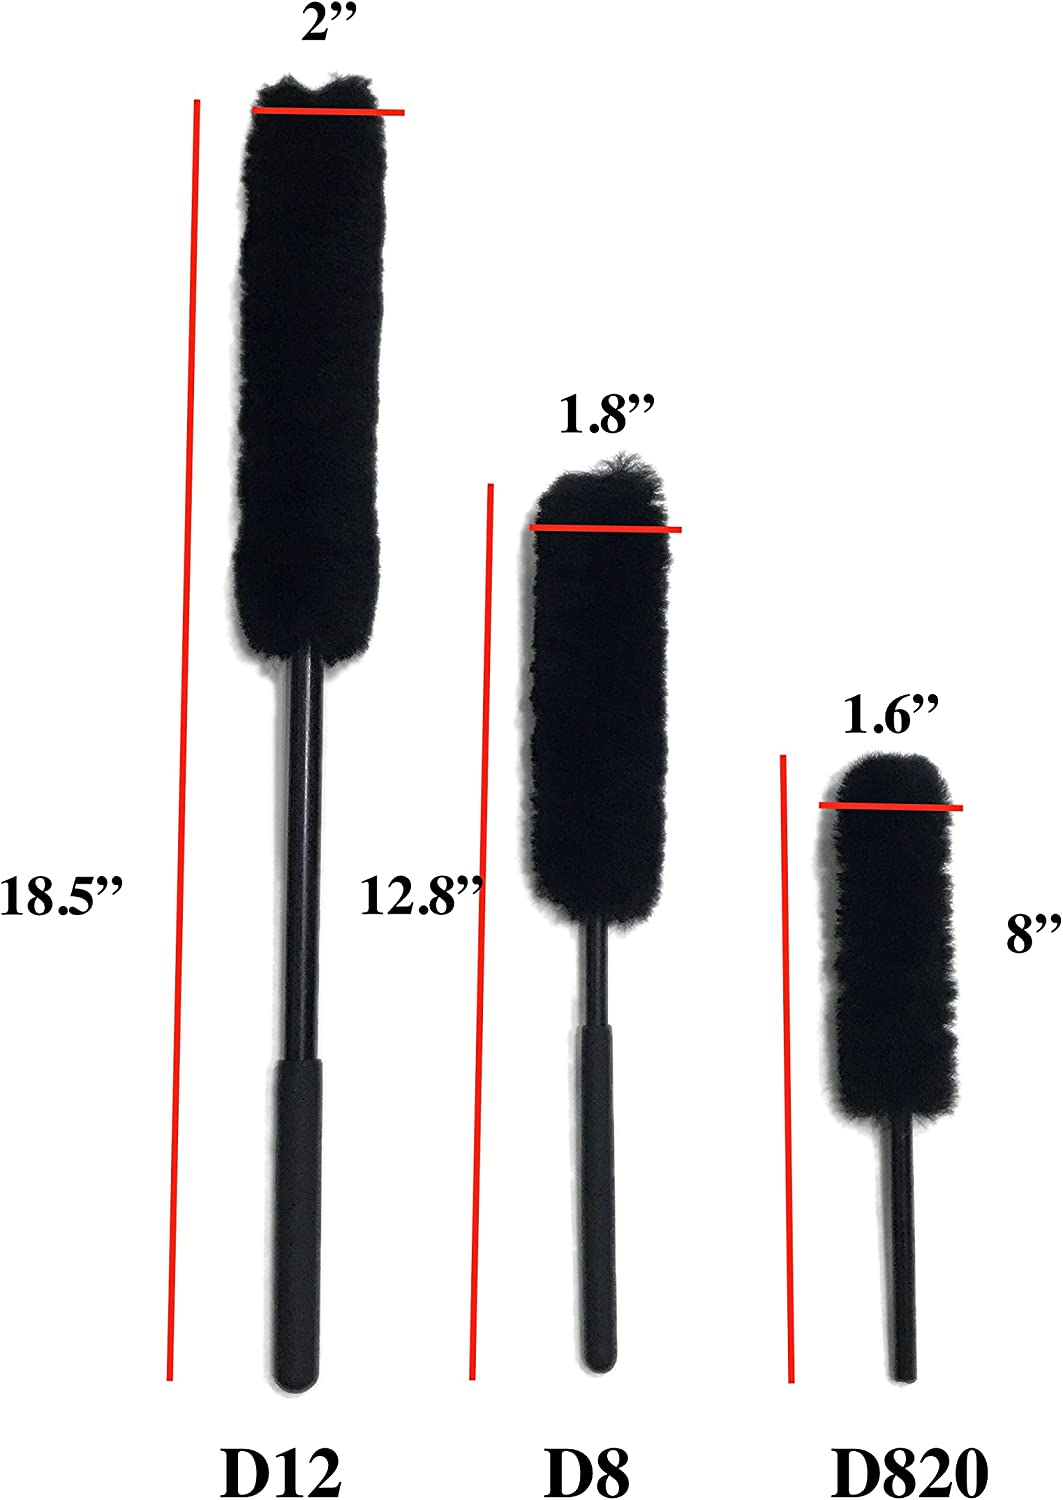 3 Brushes Dense Fibers Clean Wheels Safely Soft ,100/% Wool DUMI D12D8D820 Car Wheel Brushes Kit